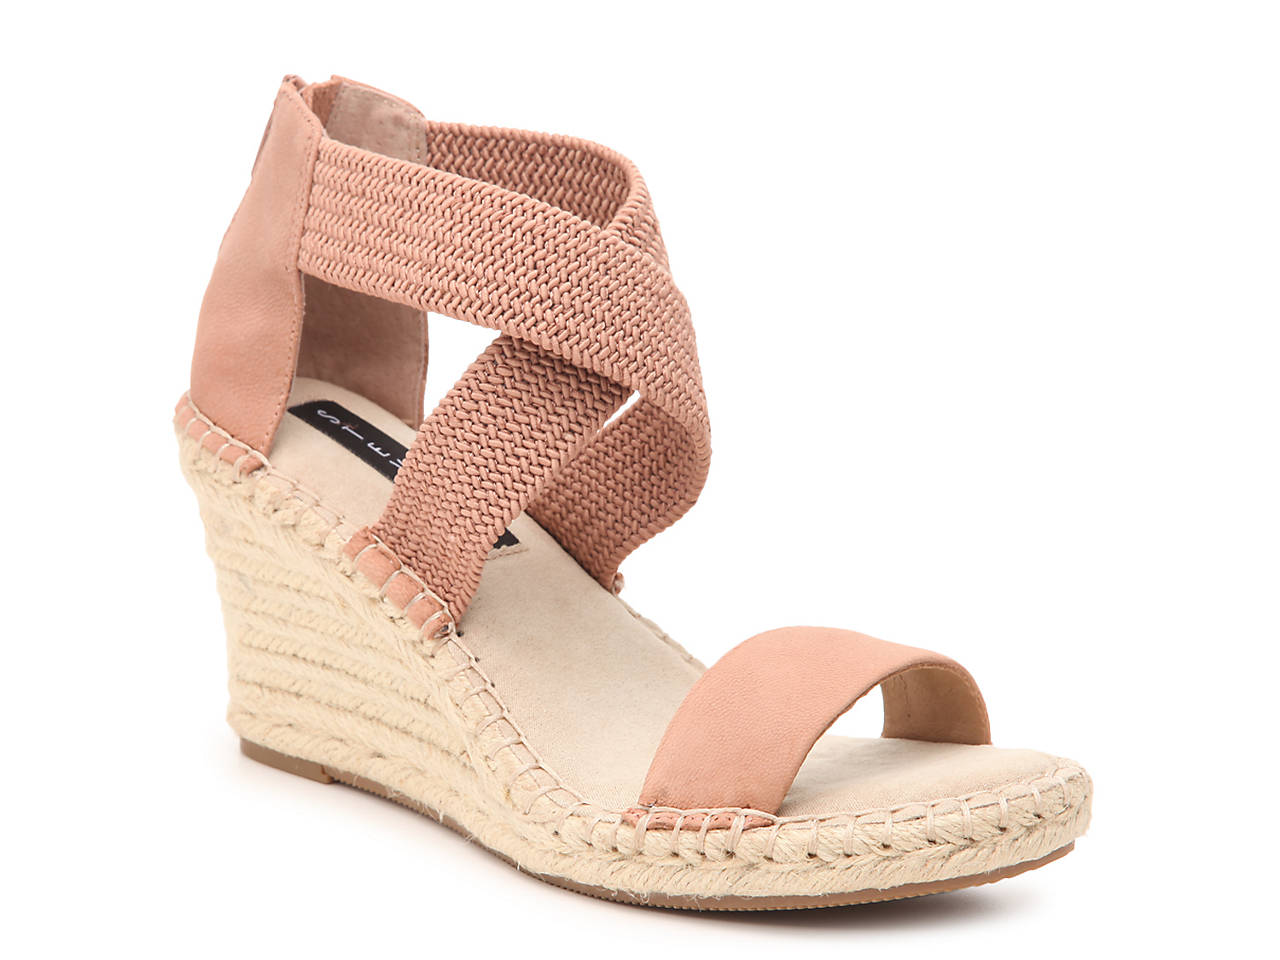 b62fcbcb2e9 Excited Espadrille Wedge Sandal